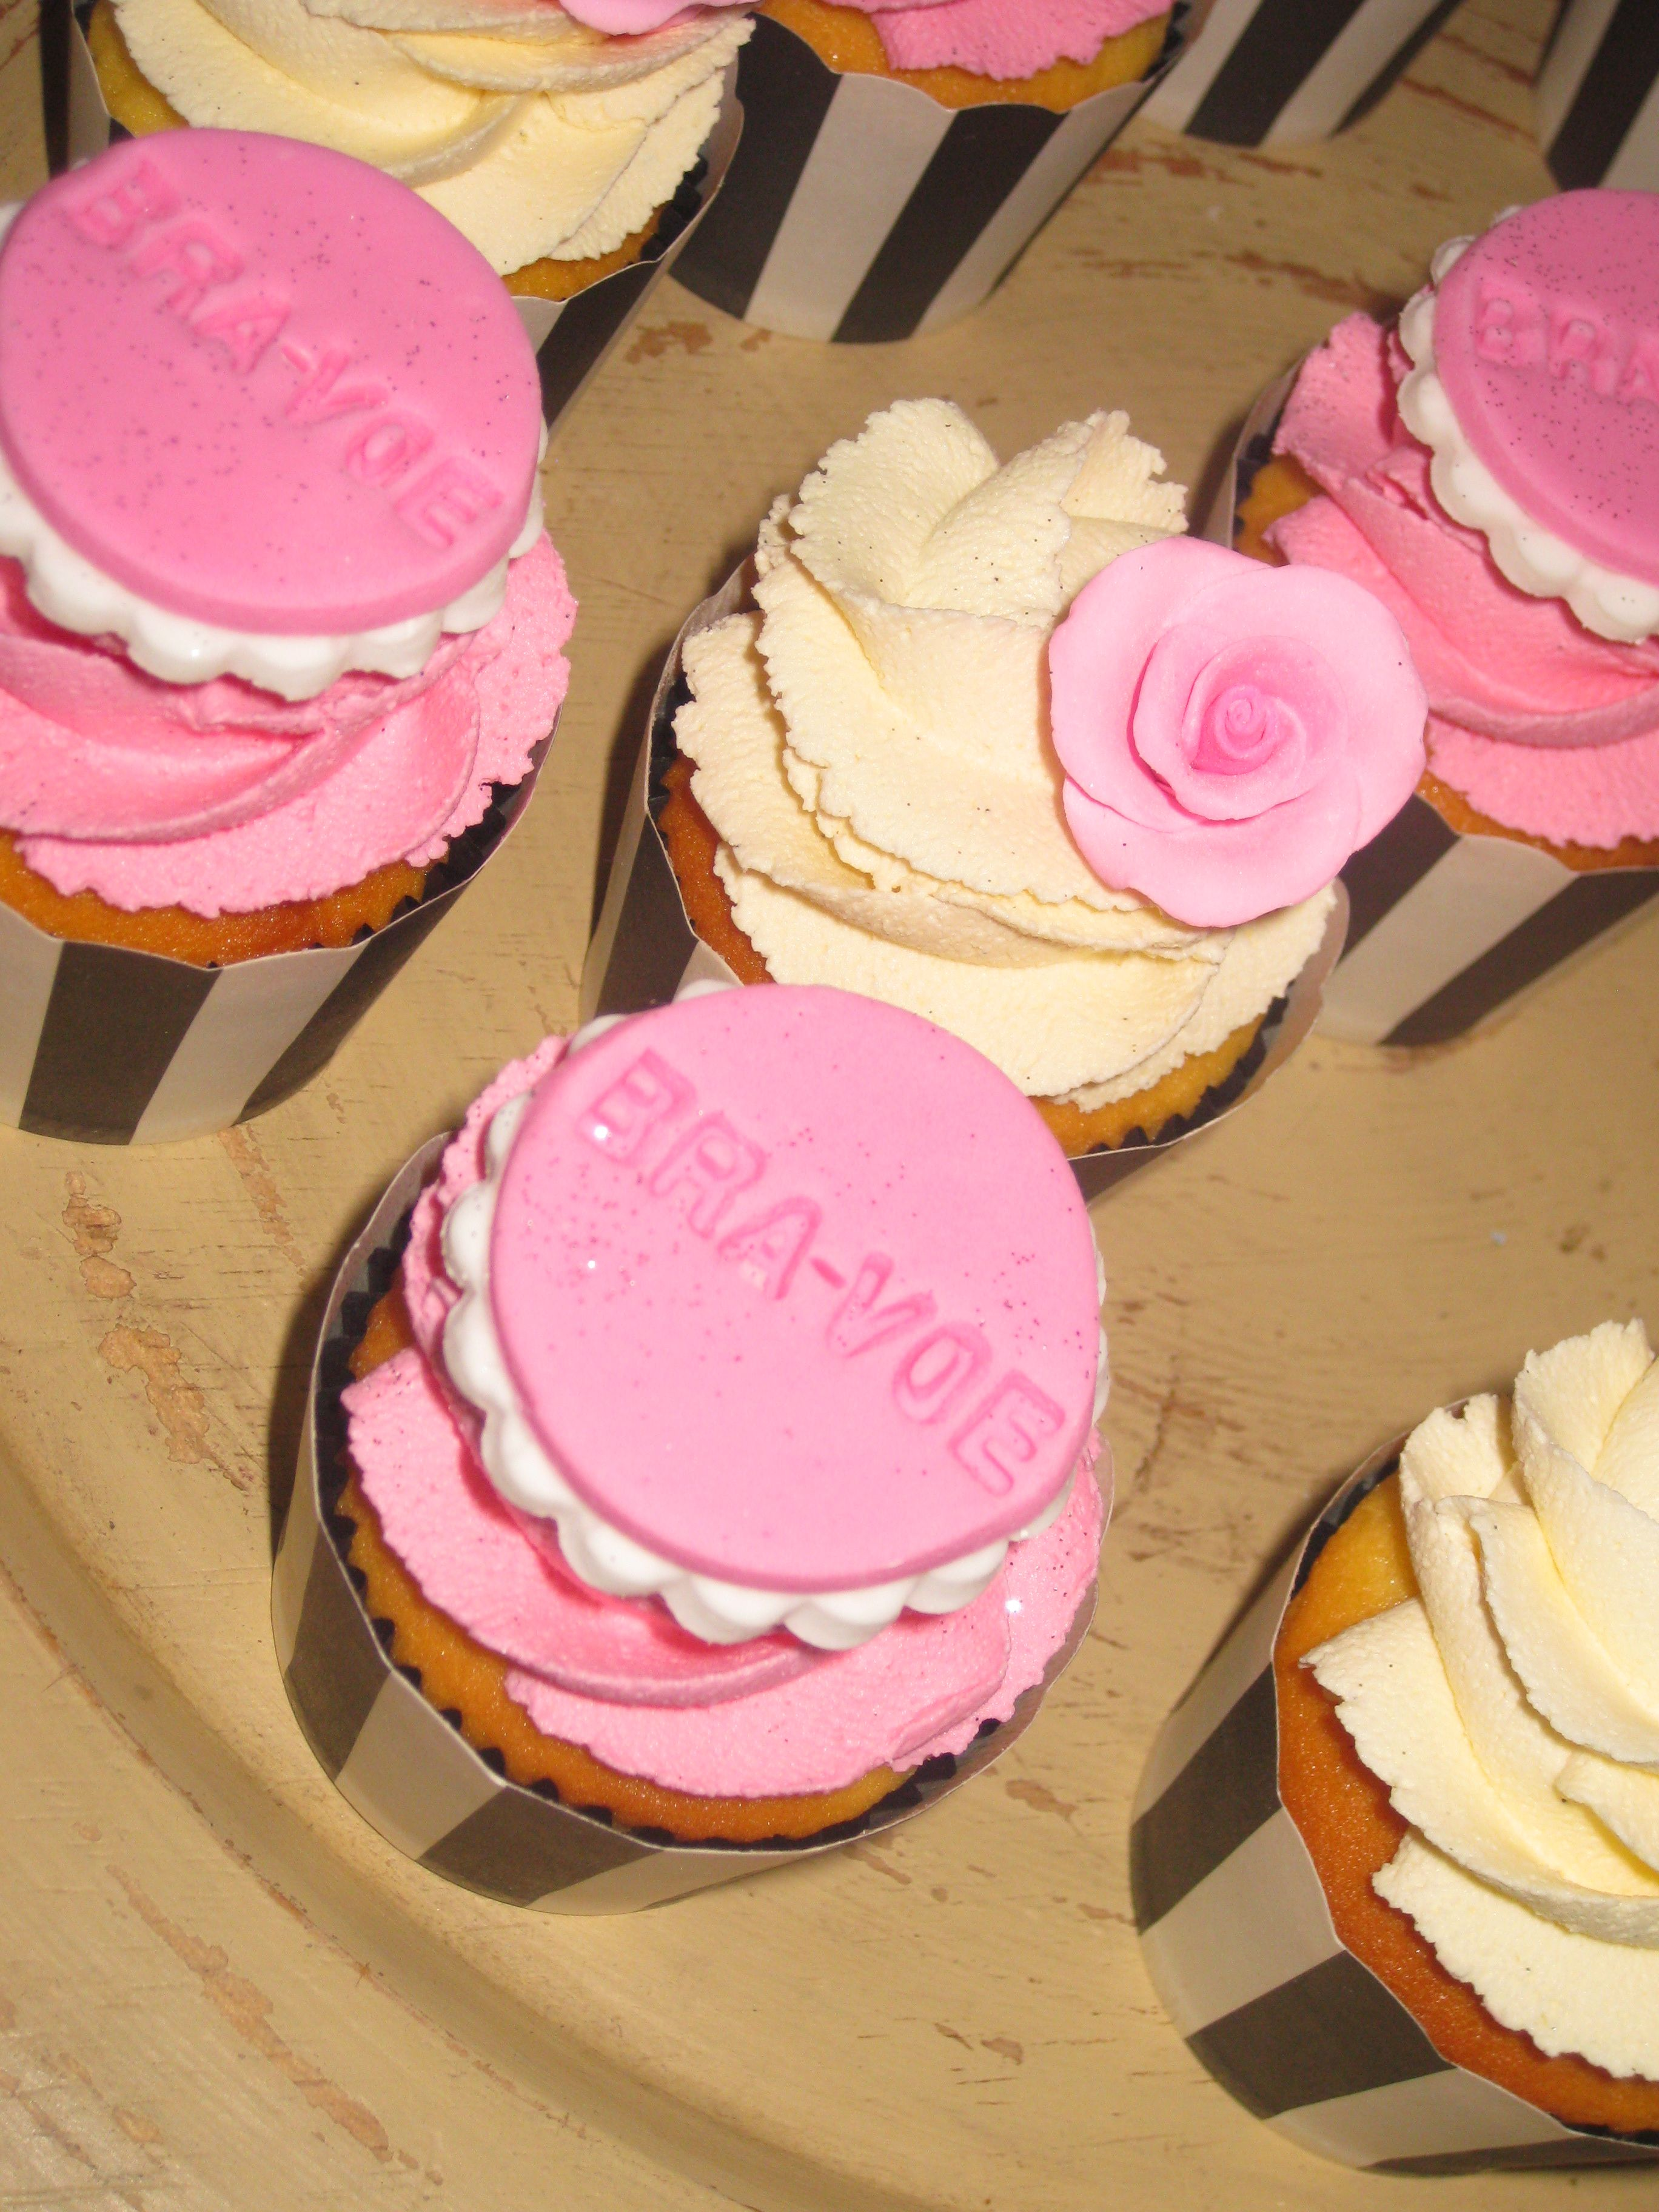 Nice Bra Voe Cupcakes For Launch Day Of My New Bra Storage Solution, Thank You